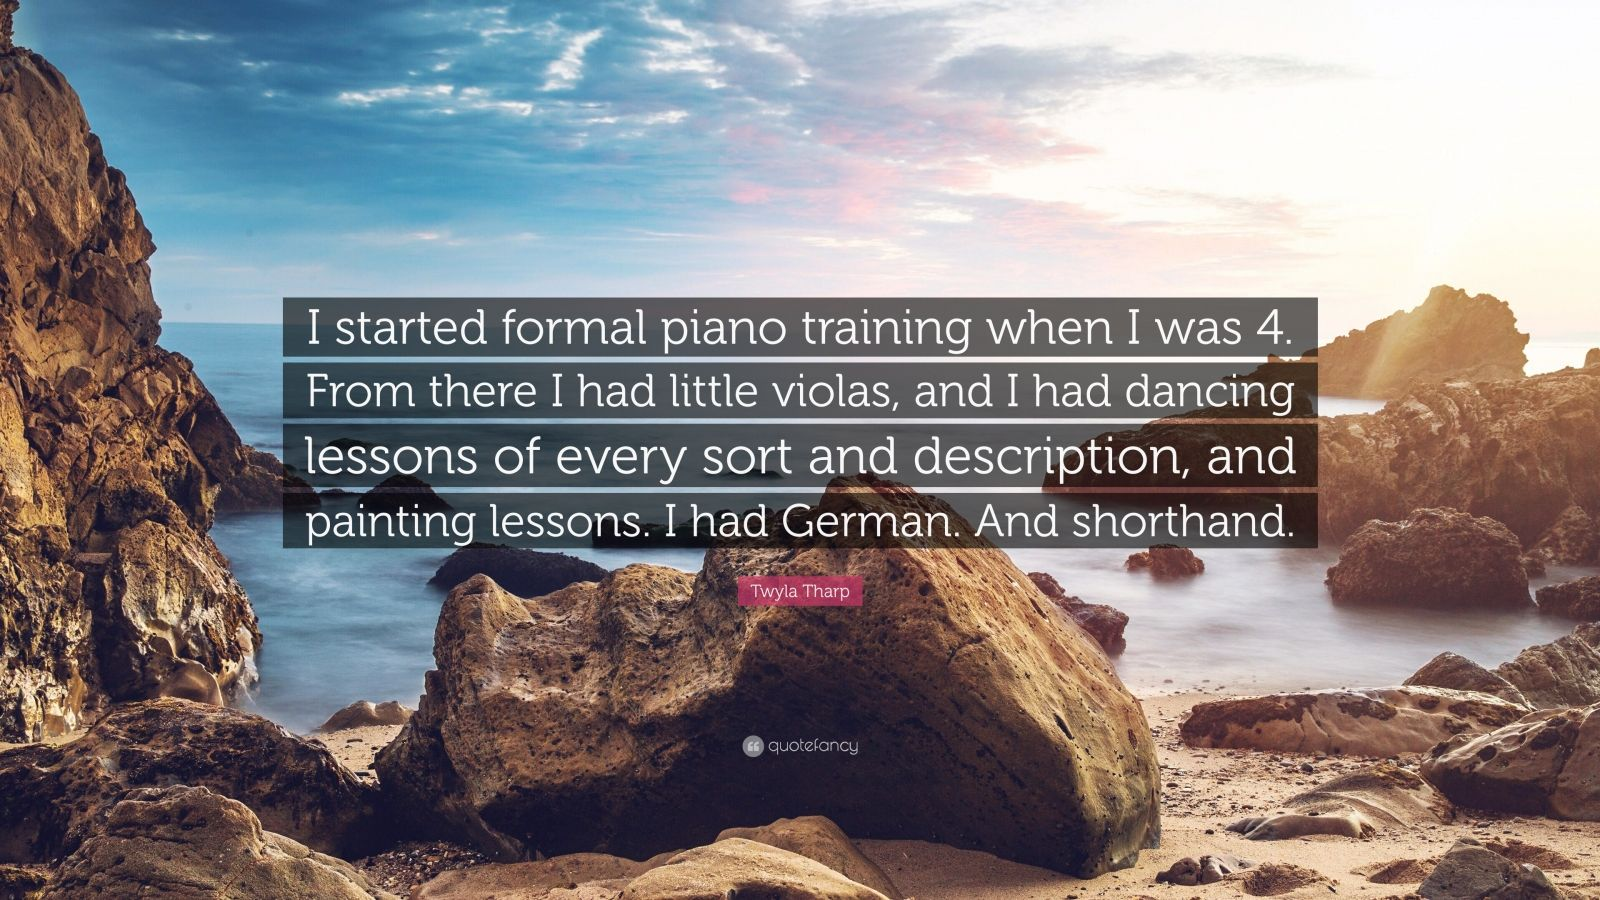 "Twyla Tharp Quote: ""I started formal piano training when I was 4. From there I had little violas, and I had dancing lessons of every sort and description, and painting lessons. I had German. And shorthand."""